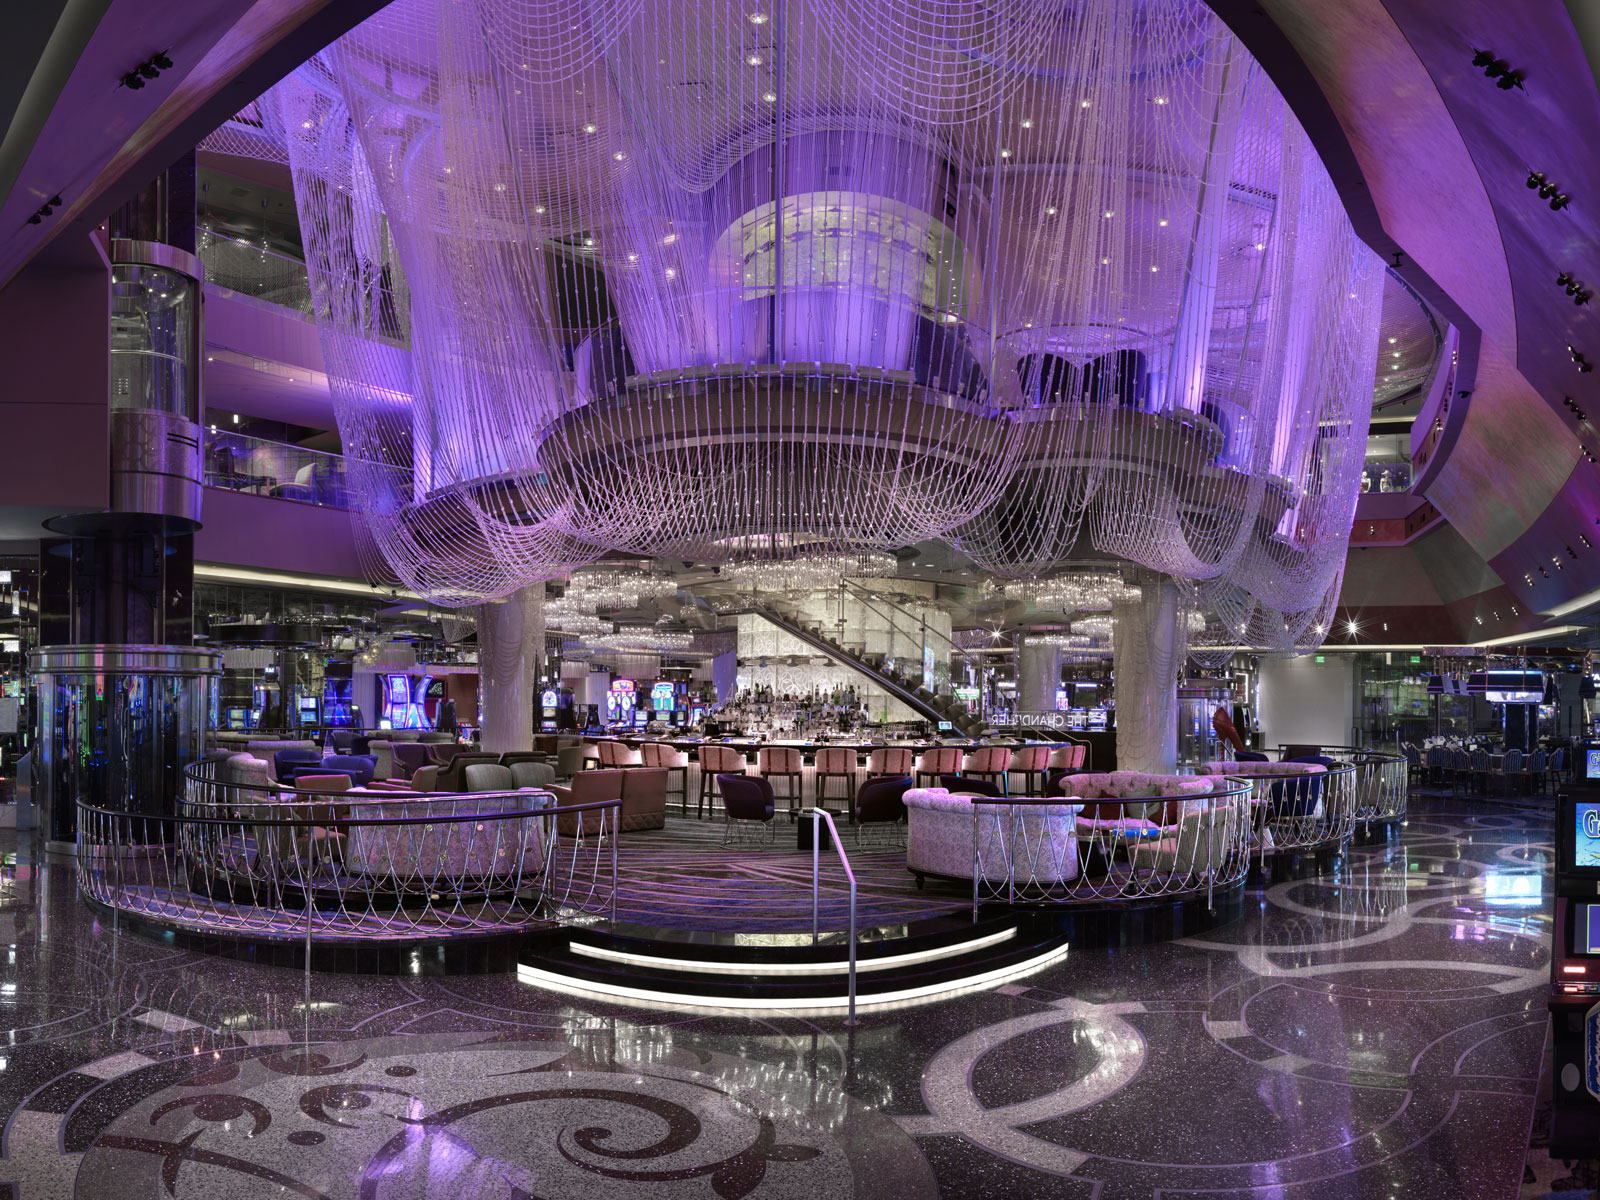 The Chandelier at The Cosmopolitan of Las Vegas